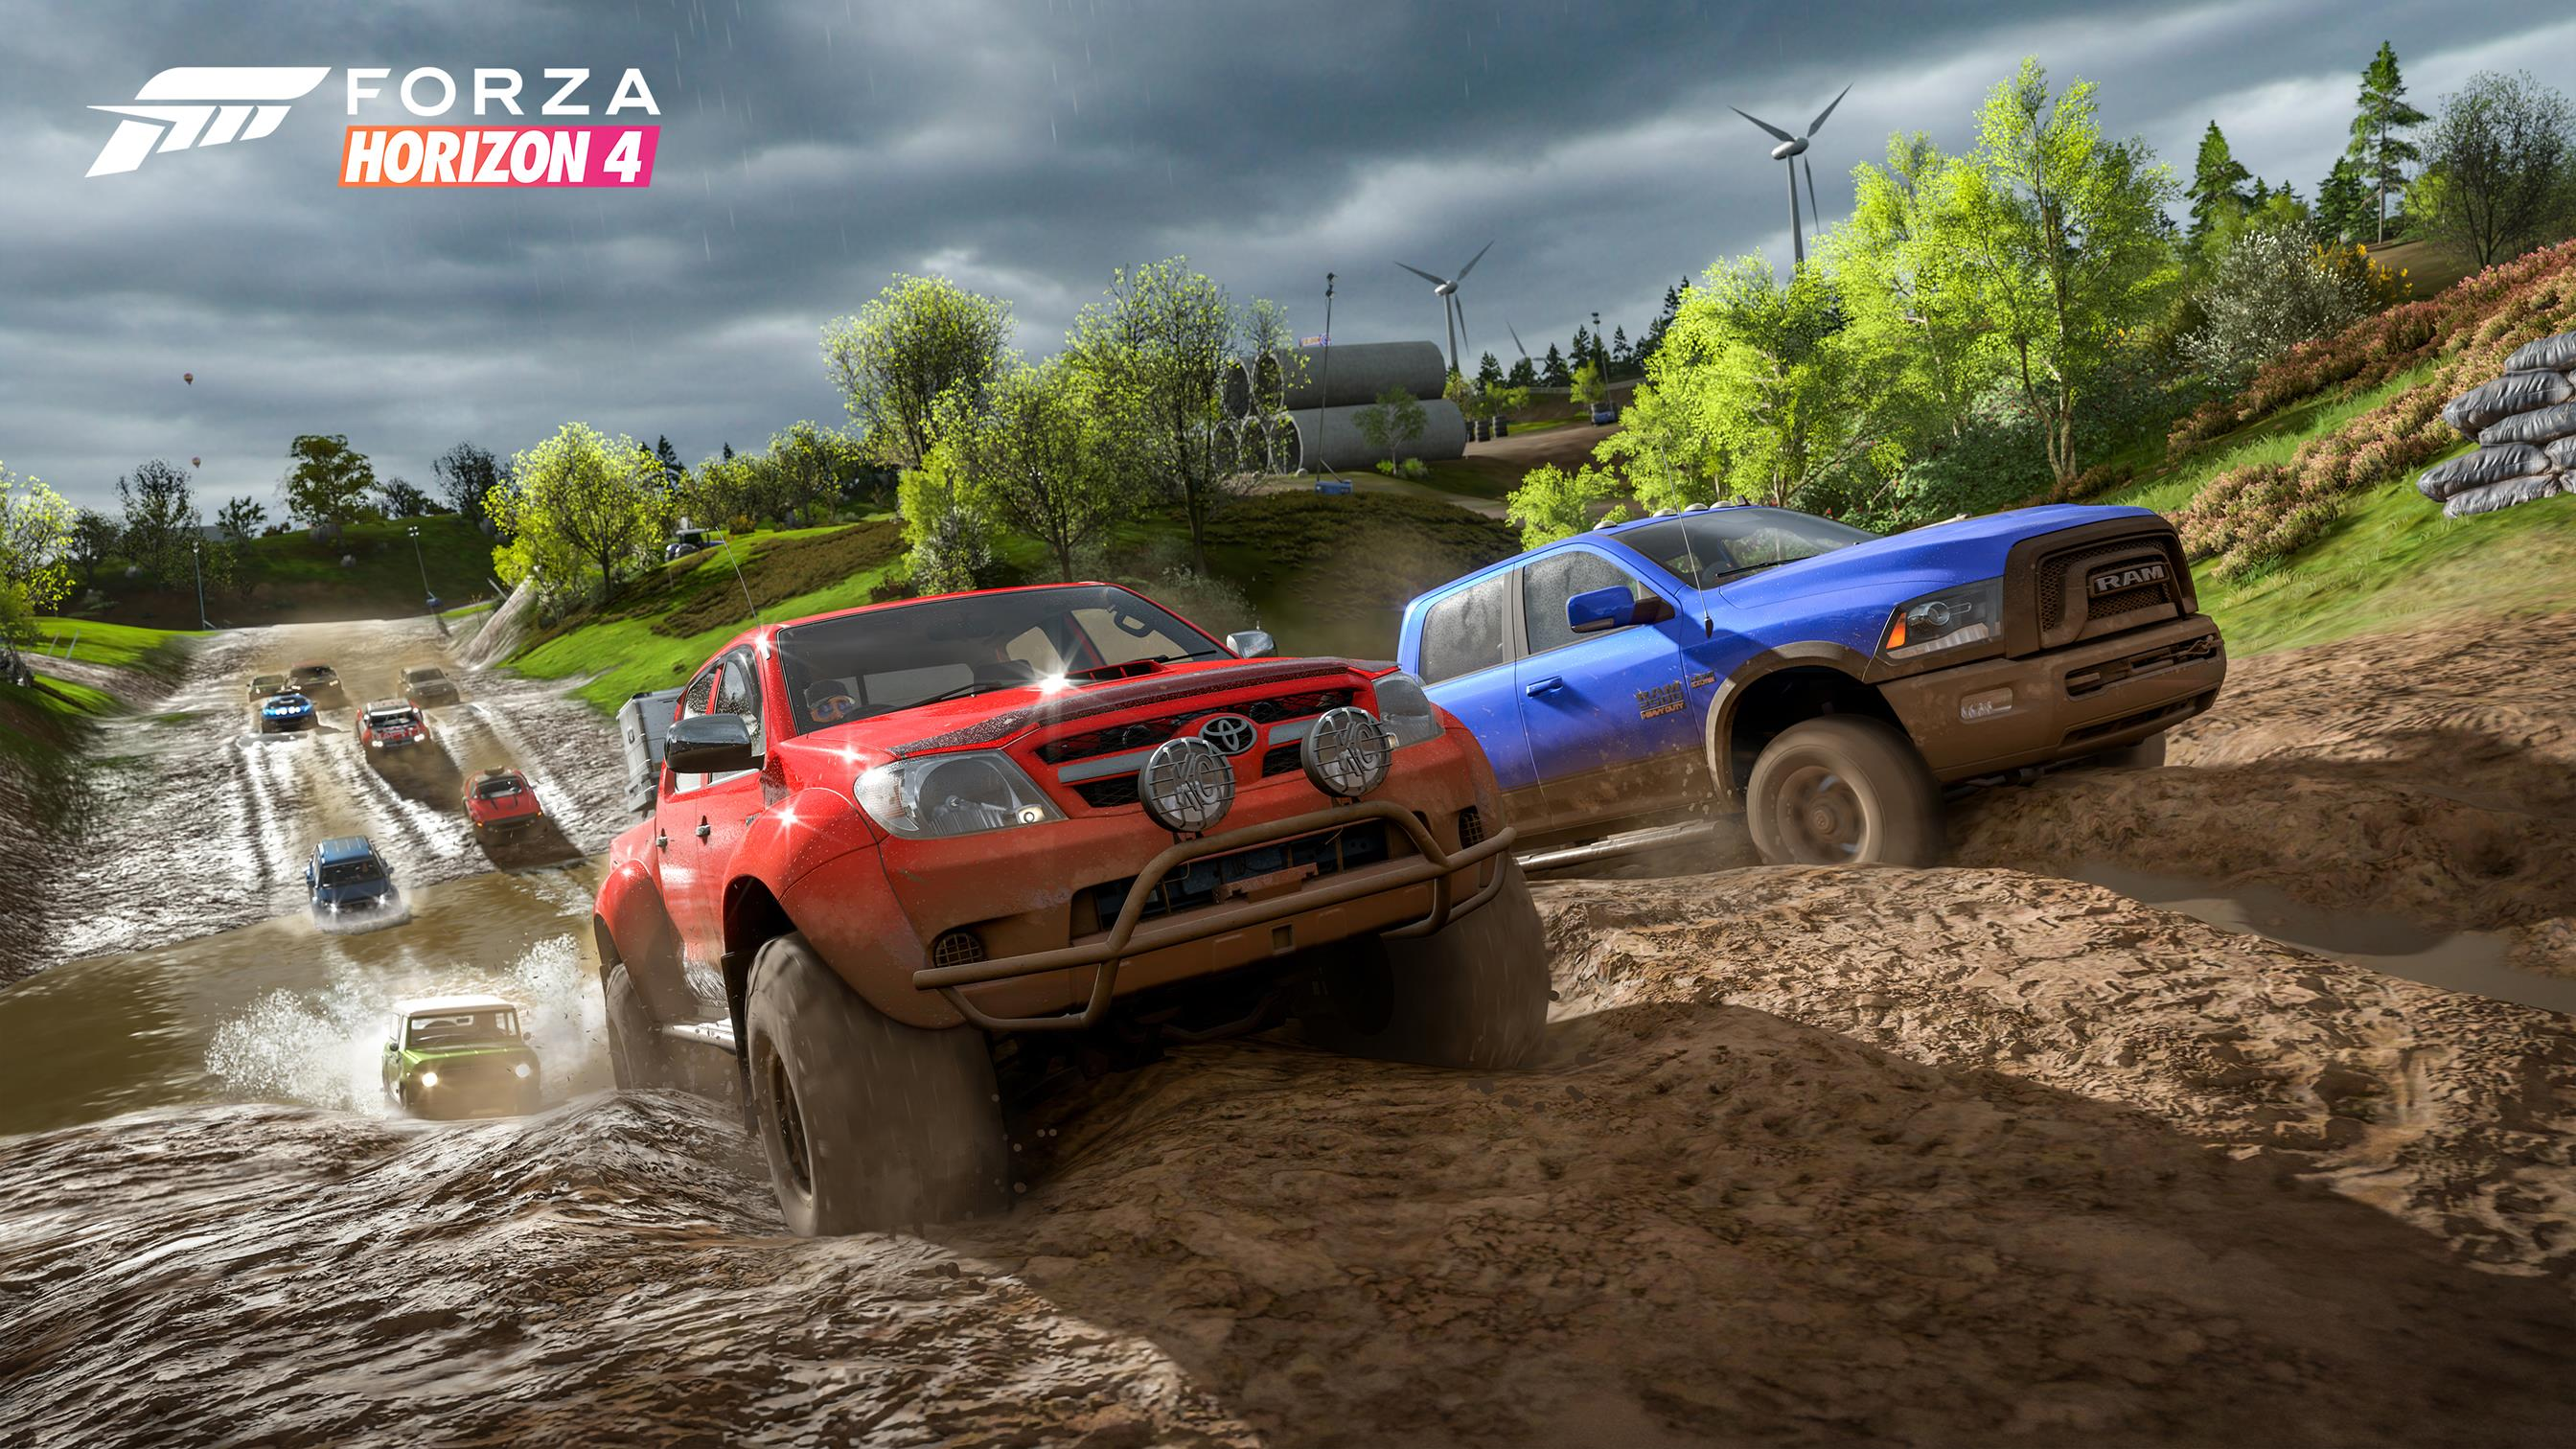 Forza Horizon 4 to Include Halo Crossover Content